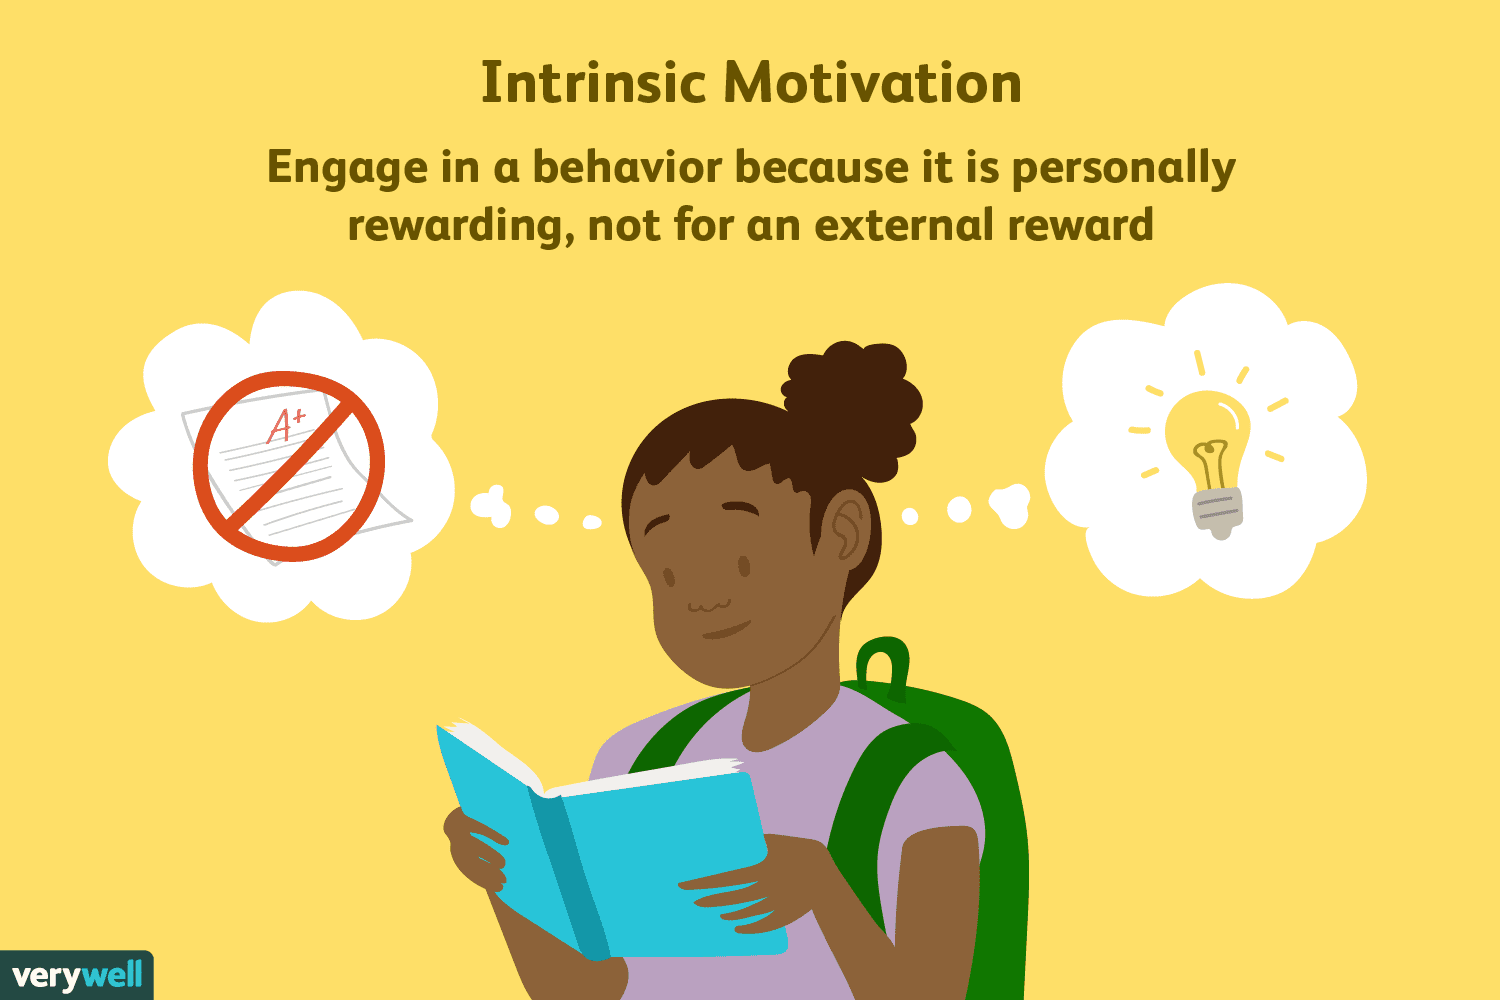 What Does Intrinsic Motivation Mean?